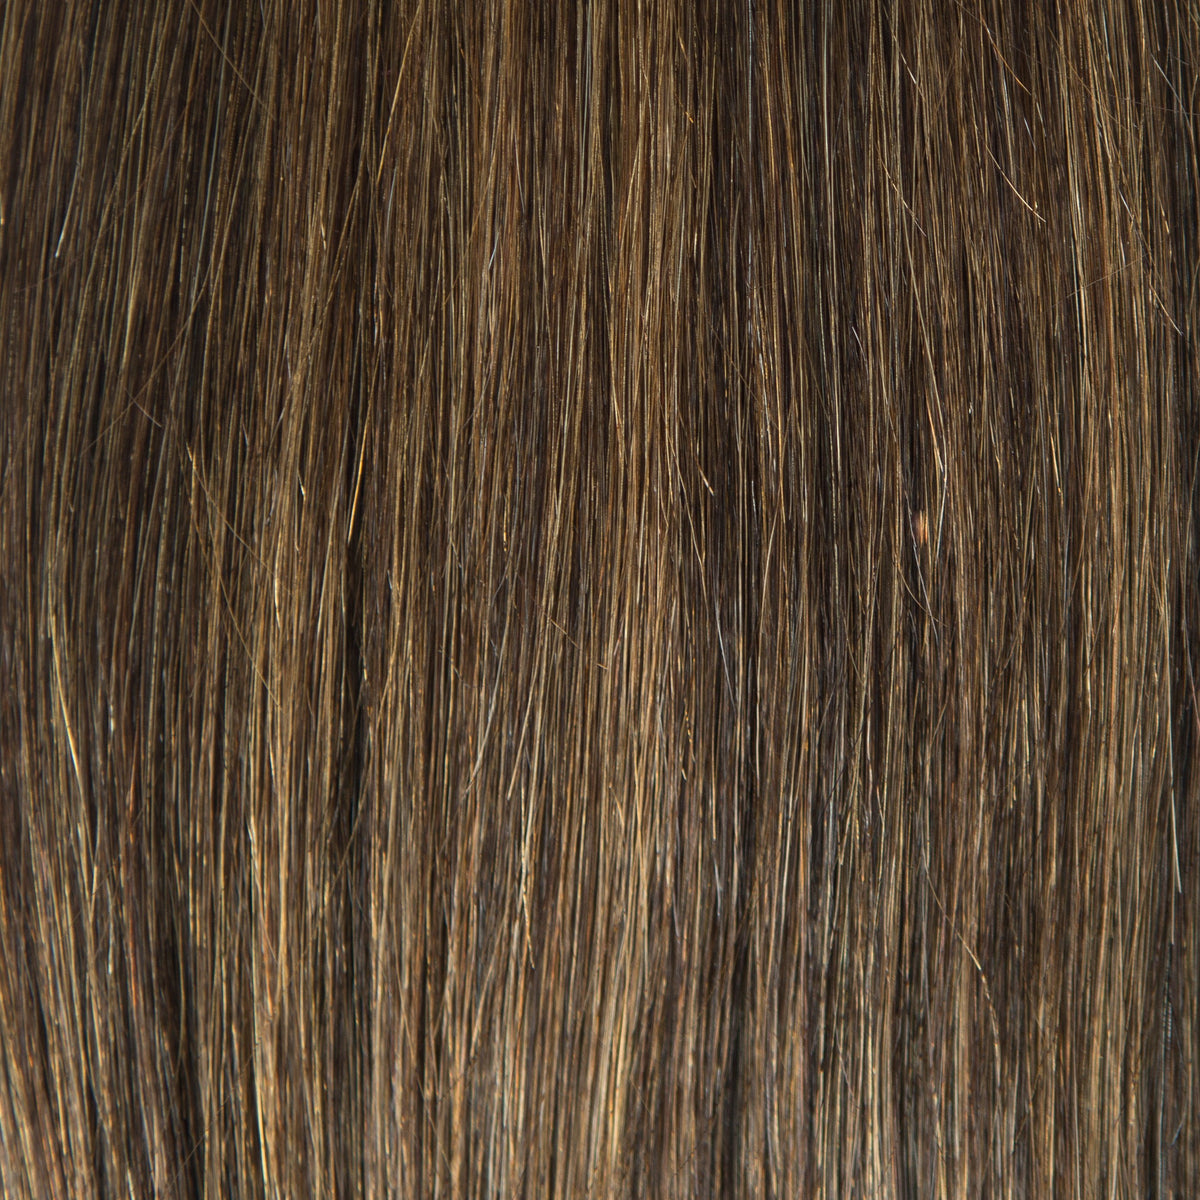 Machine_Sewn_Weft - Laced Hair Machine Sewn Weft Extensions Dimensional #1B/5